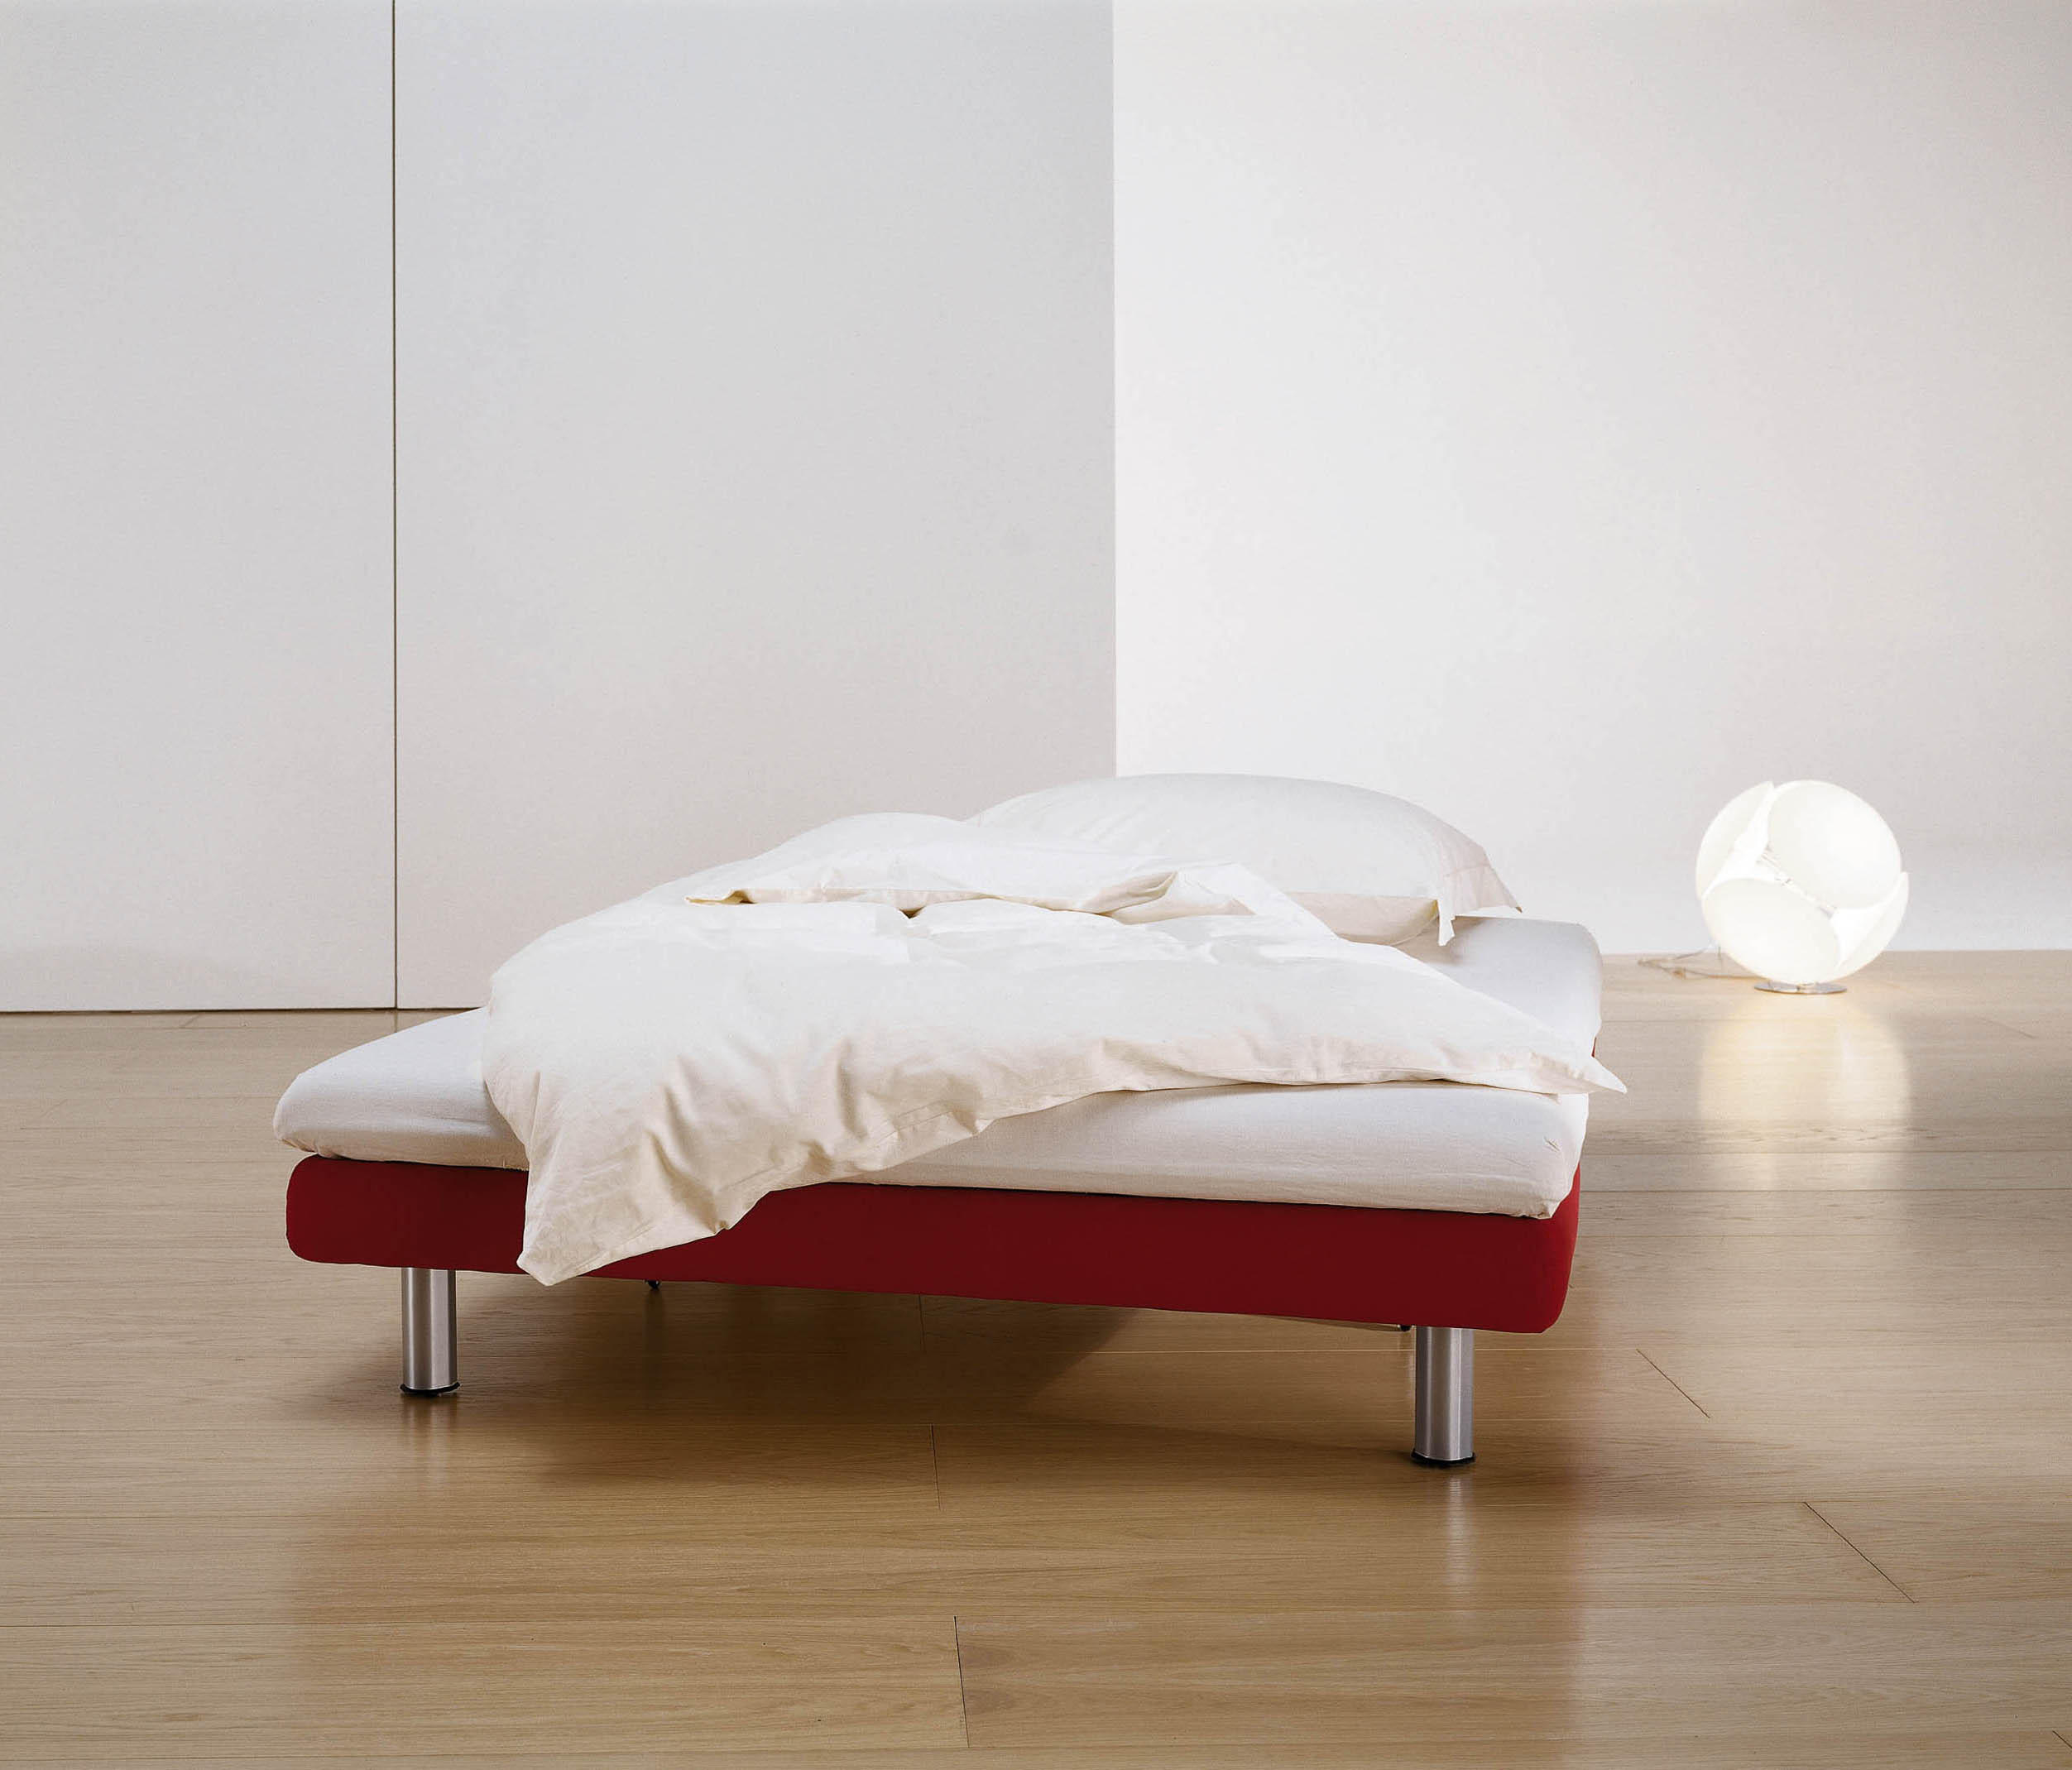 CORA BED - Sofa beds from Neue Wiener Werkstätte | Architonic